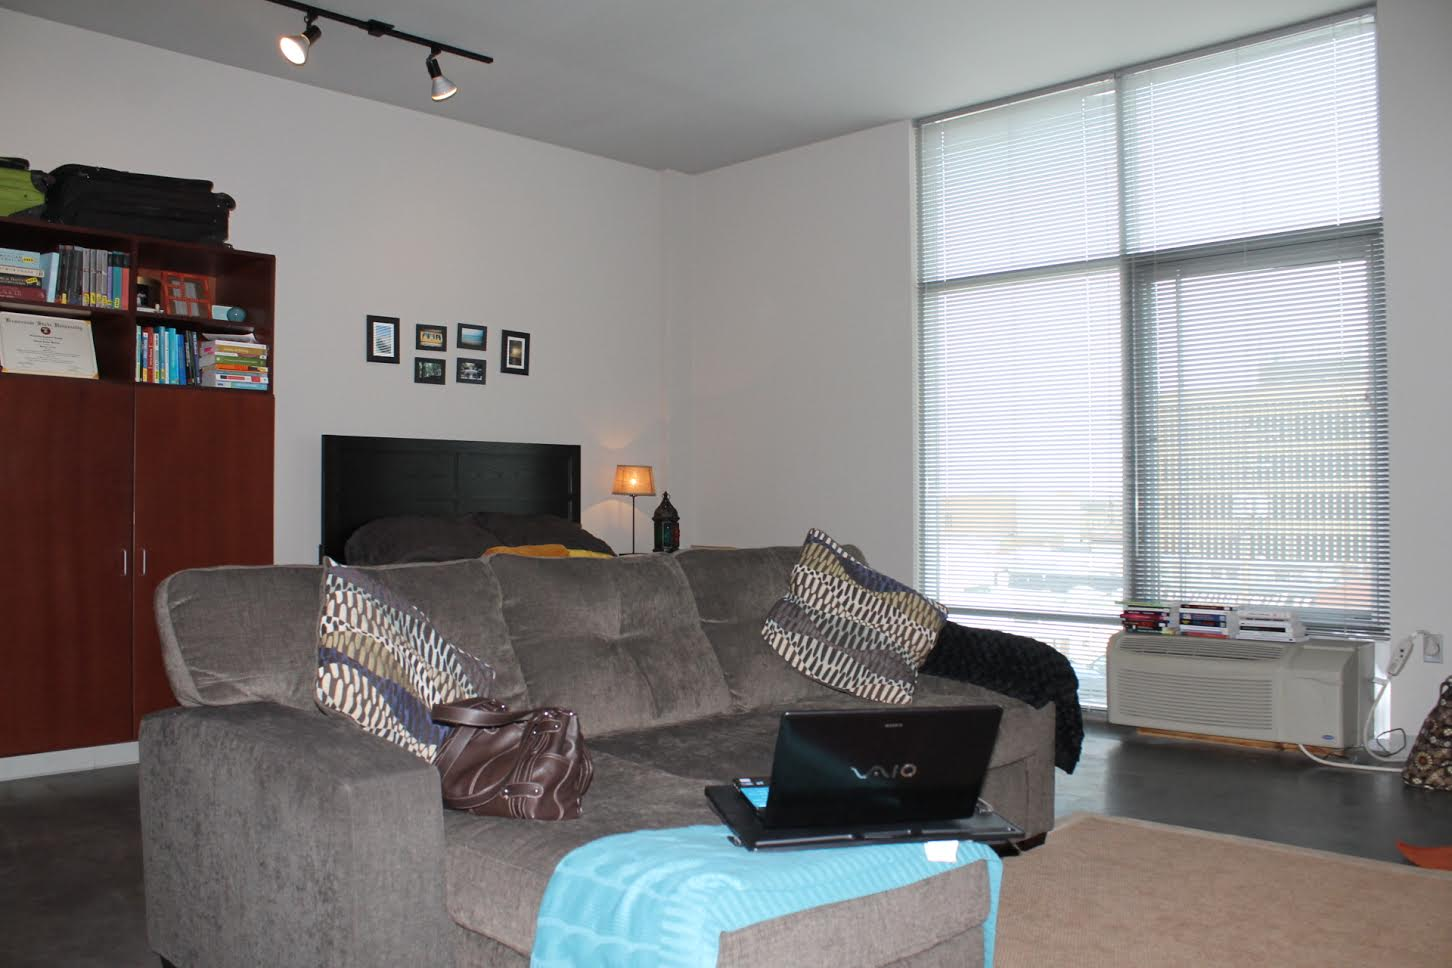 rent loft apt lawrence ks apartment in downtown las vegas lofts in